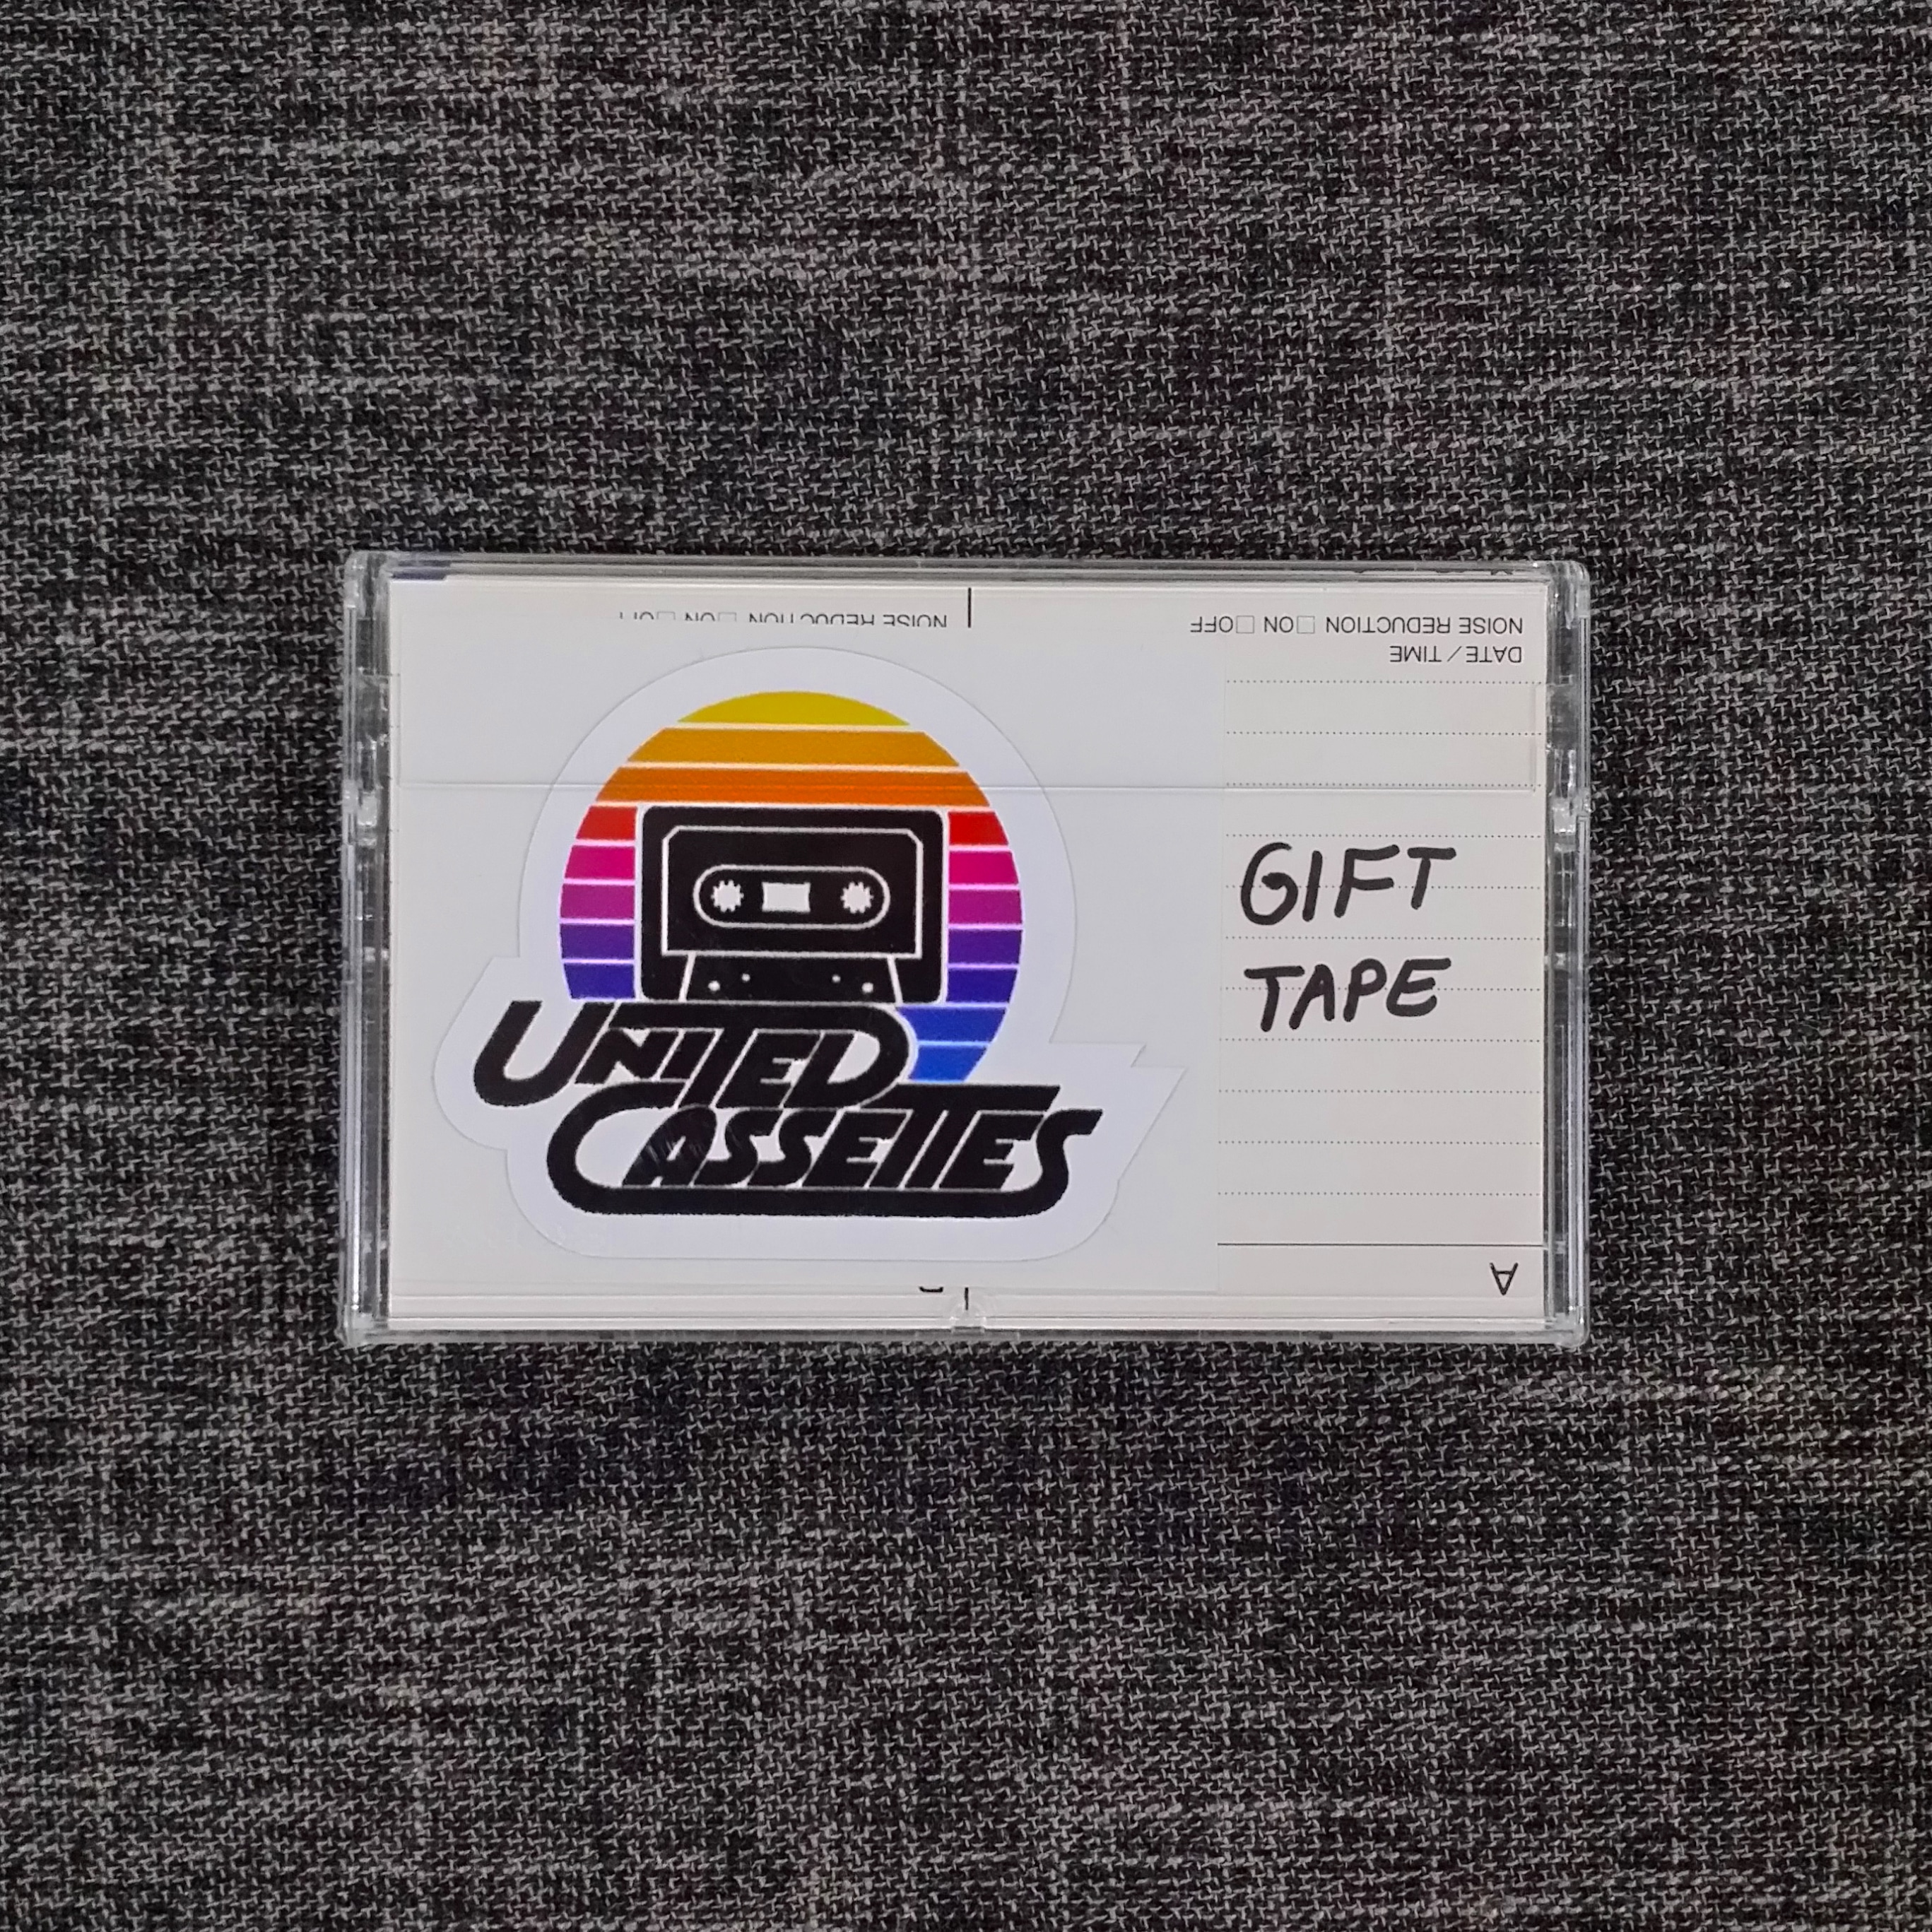 Gift Certificate (GIFT TAPE)